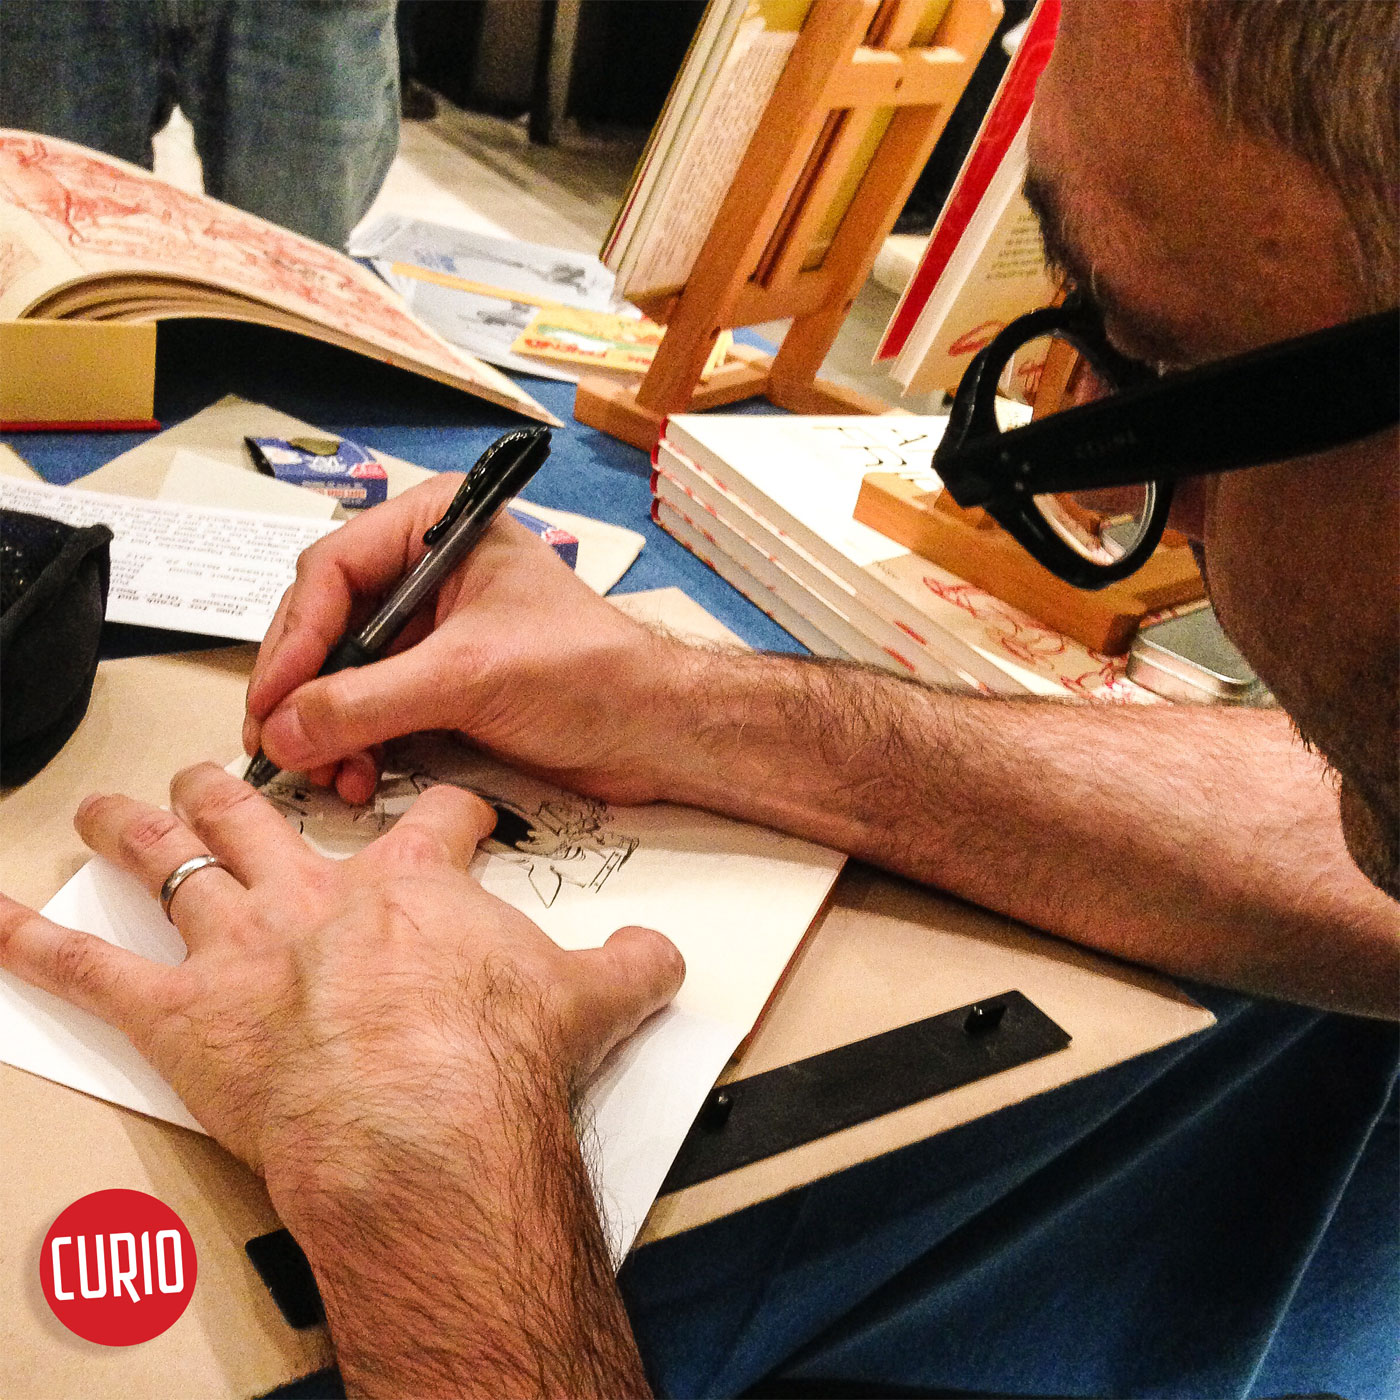 Cesare Asaro of Curio & Co. signing at IndiComics at Wien Museum in 2017